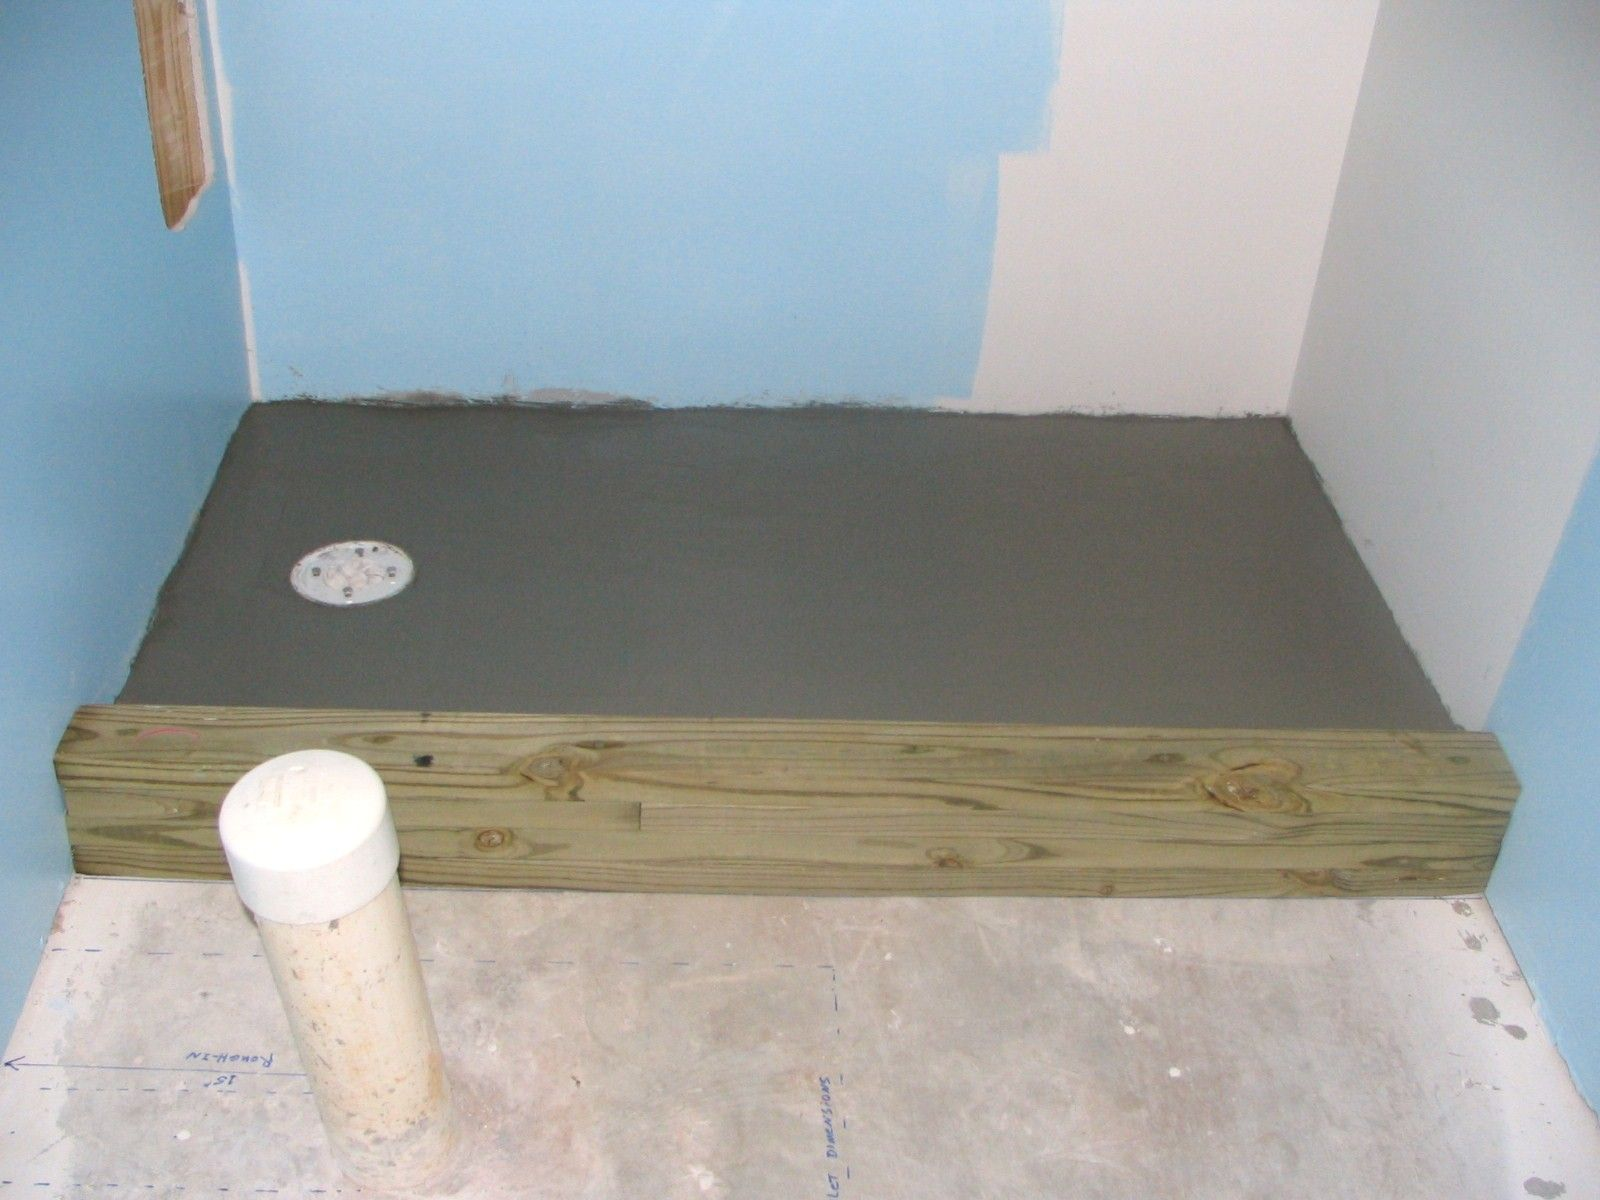 How To Finish A Basement Bathroom Mortar Bed Tile Shower Pan